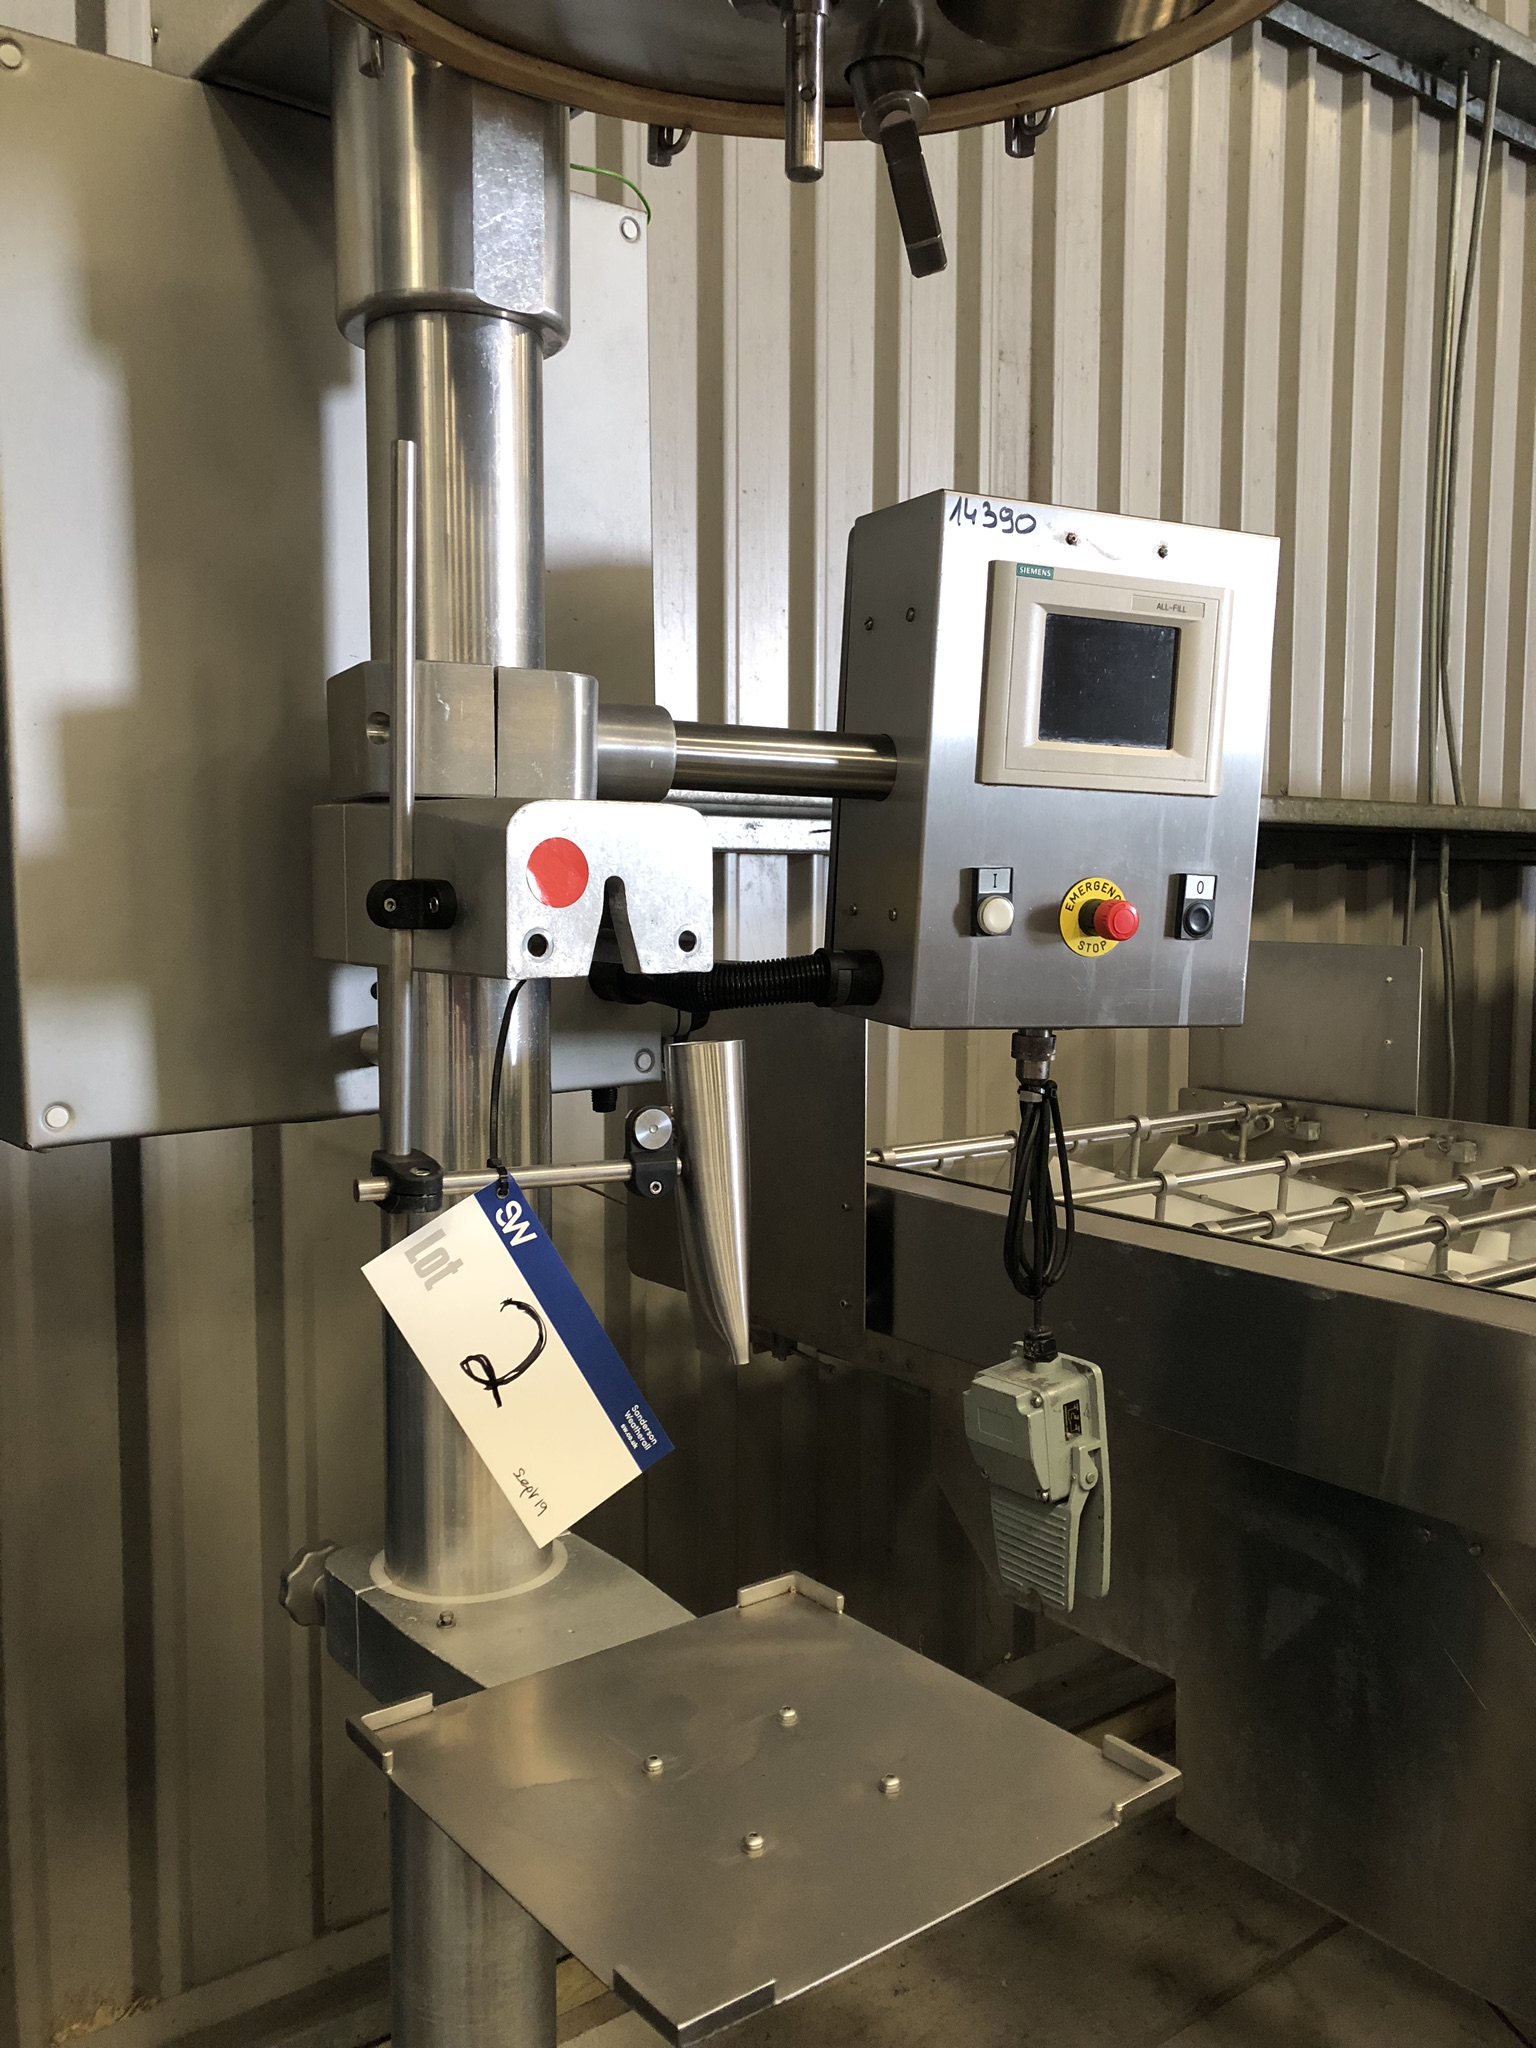 AllFill POWDER DEPOSITOR, with Siemens control panel, approx. 2.6m high x 1m x 1m, lift out charge - - Image 2 of 4